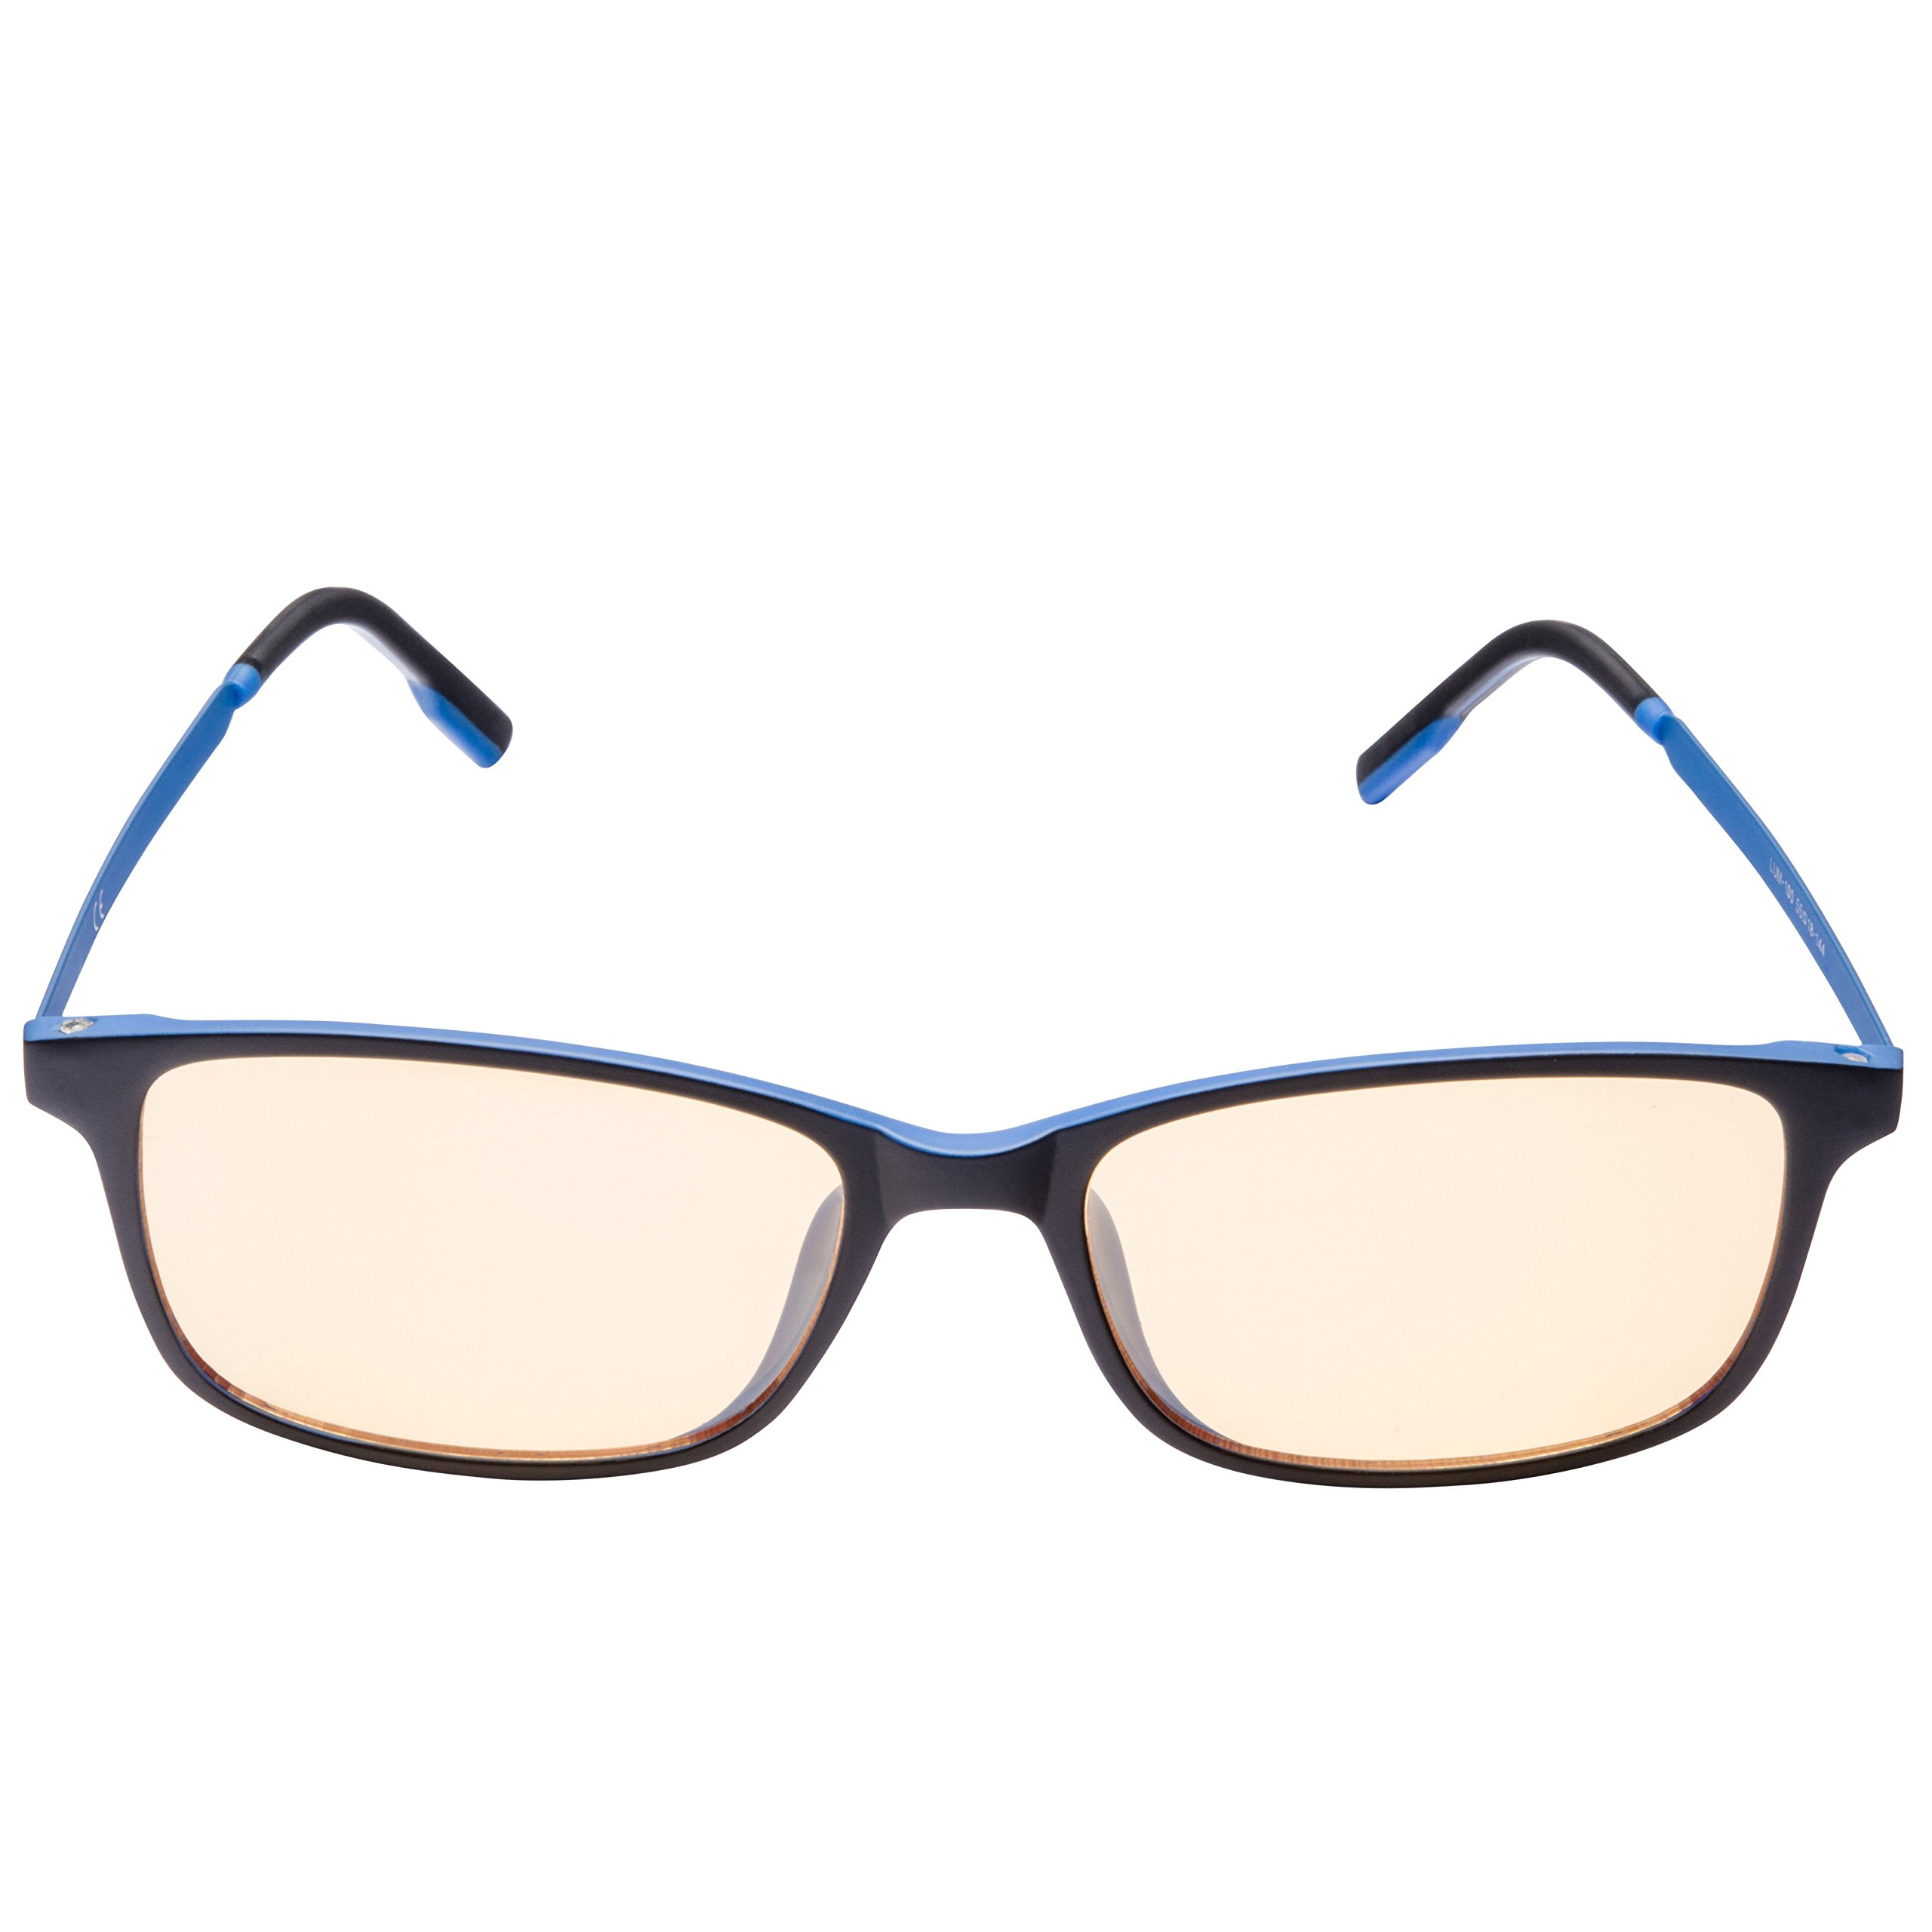 Glasses for the driver - a necessary accessory on the road